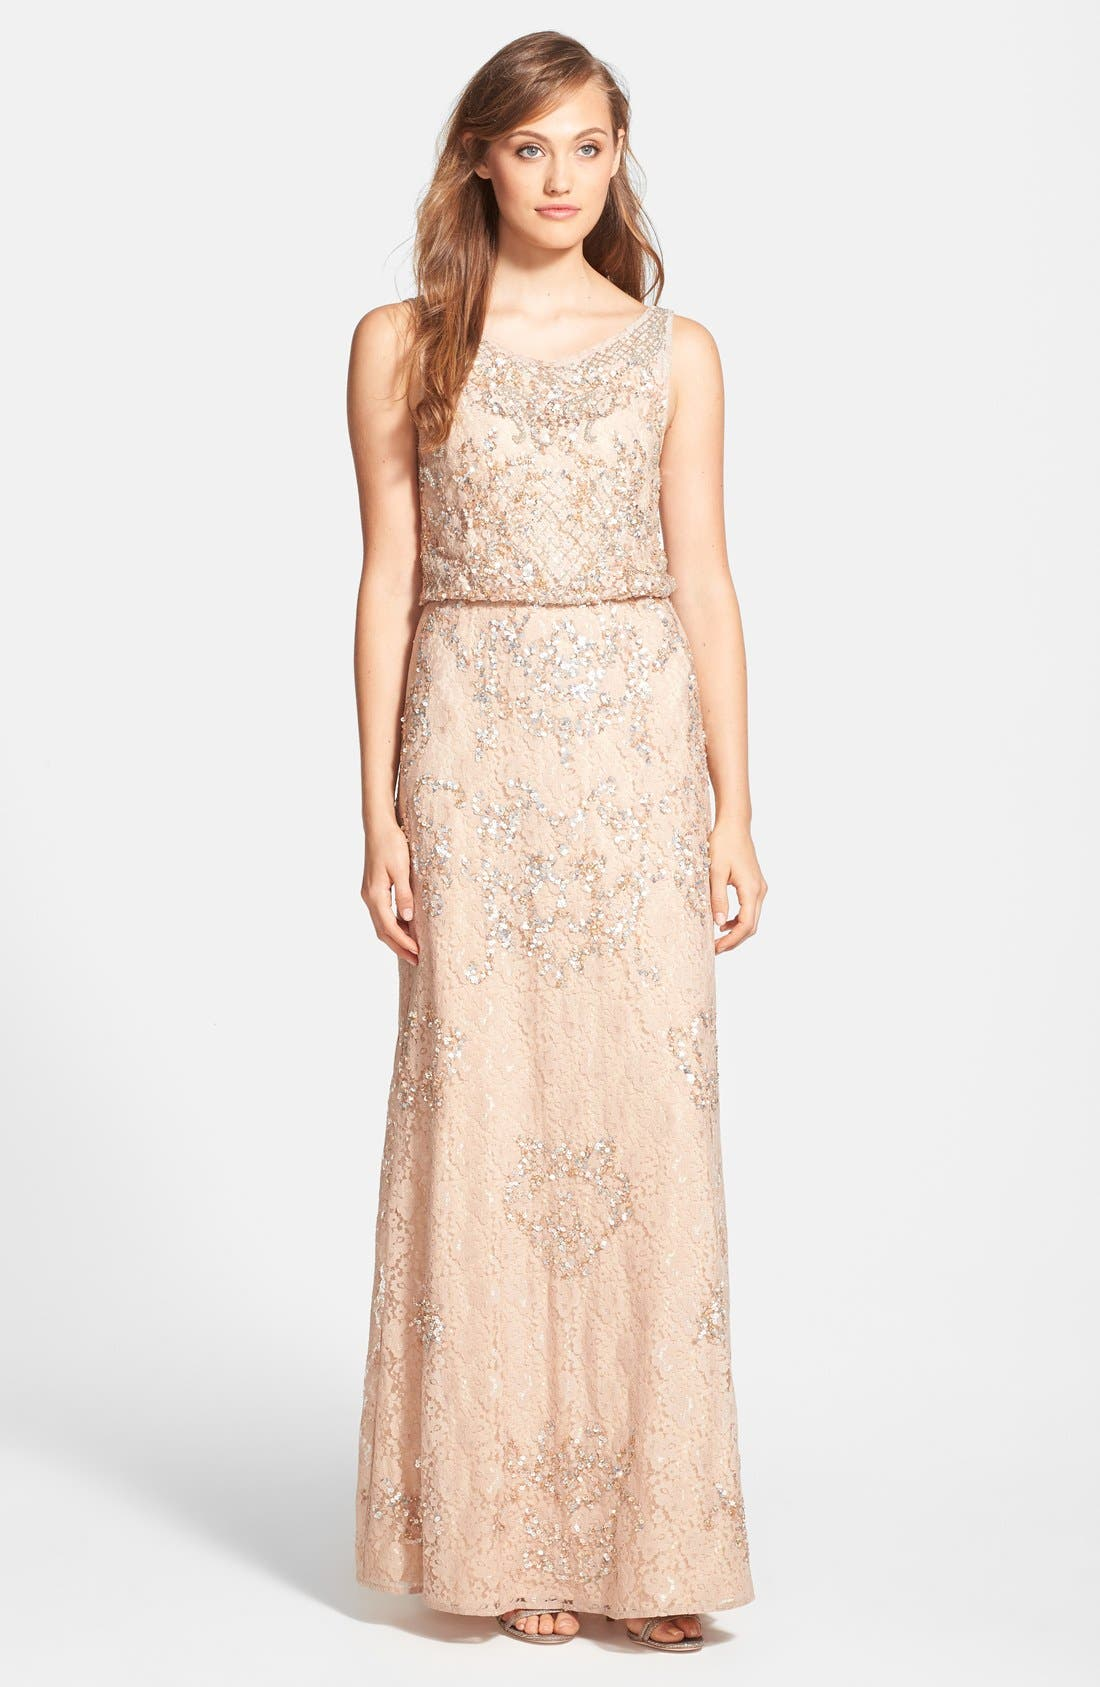 Alternate Image 1 Selected - Aidan Mattox Embellished Lace Blouson Gown